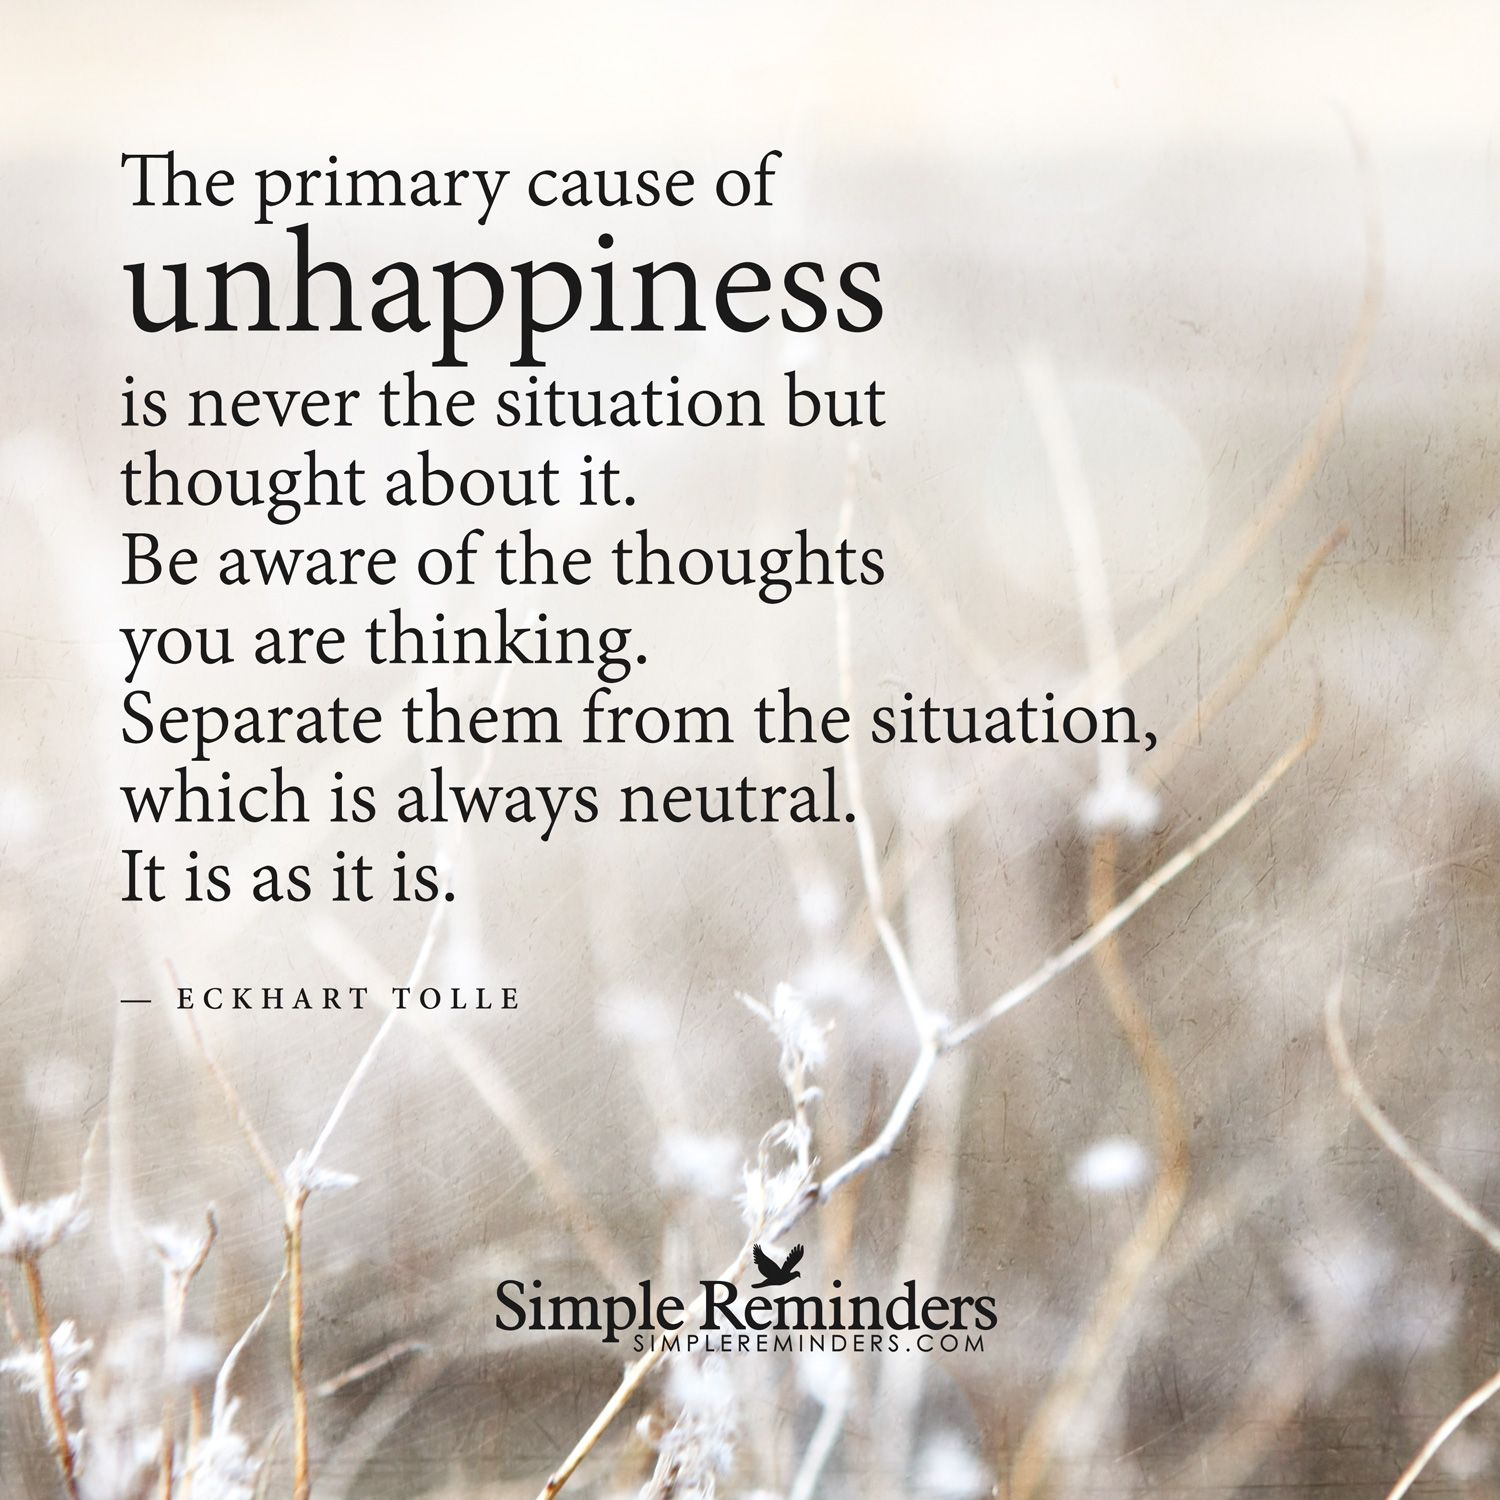 Charmant The Primary Cause Of Unhappiness Is Never The Situation But Your Thoughts  About It. Be Aware Of The Thoughts You Are Thinking.